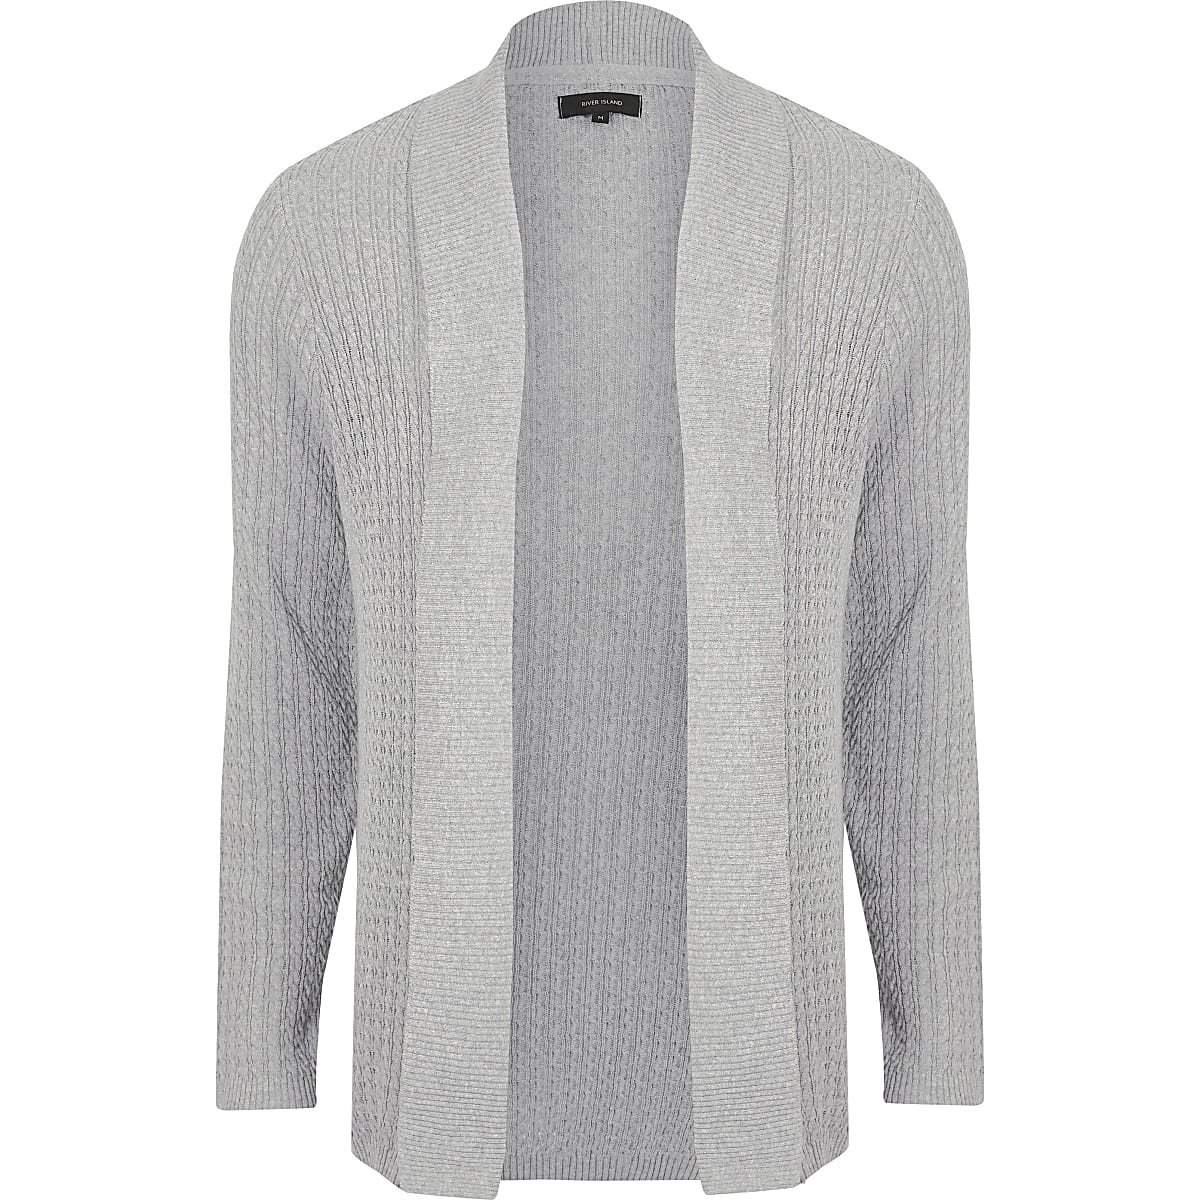 Grey cable knit open front cardigan